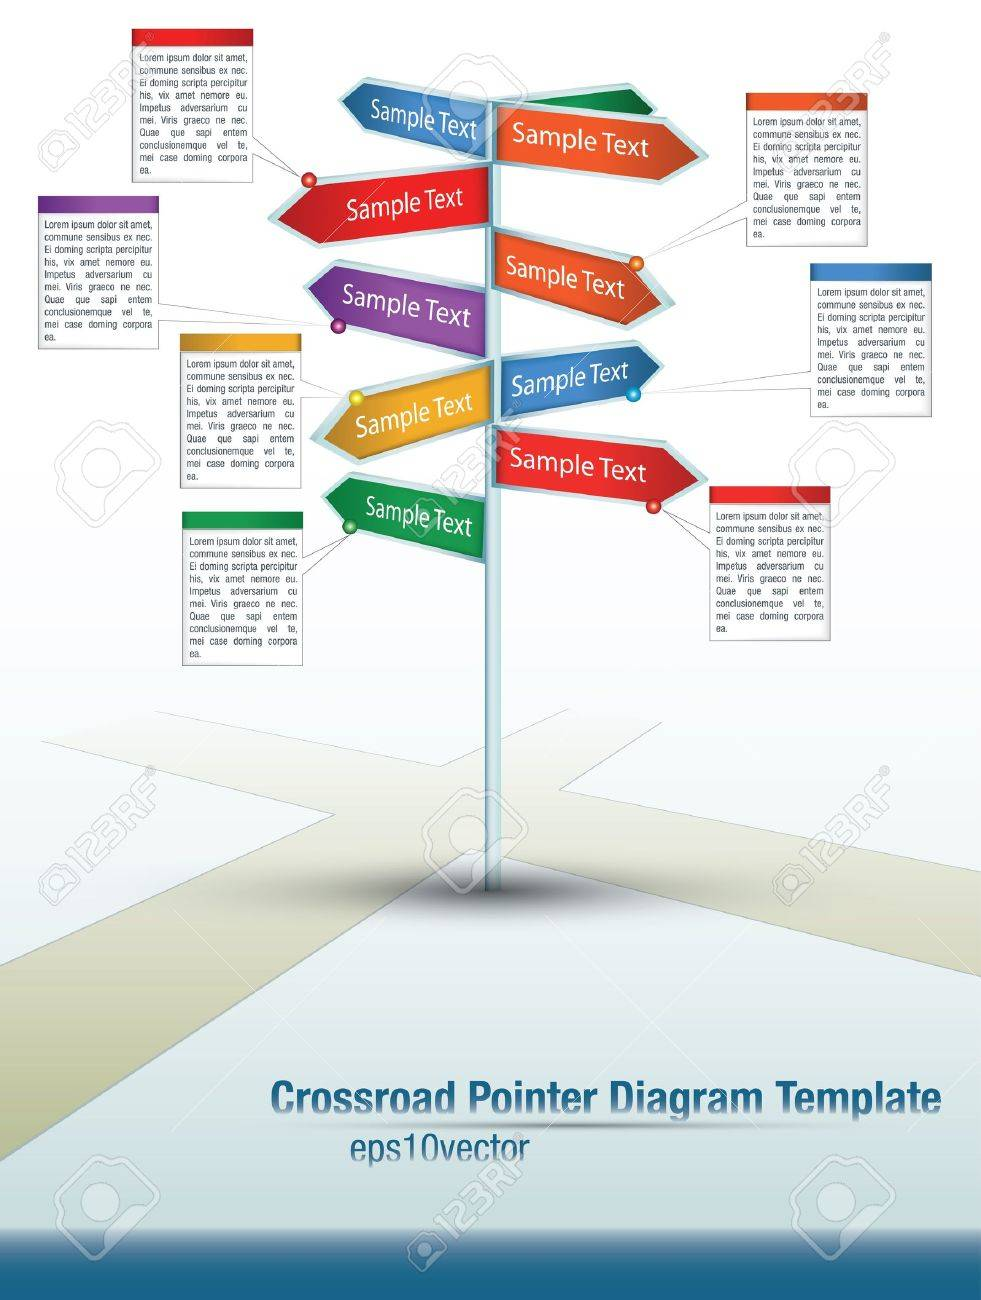 diagram template of multidirectional pointers on a signpost at